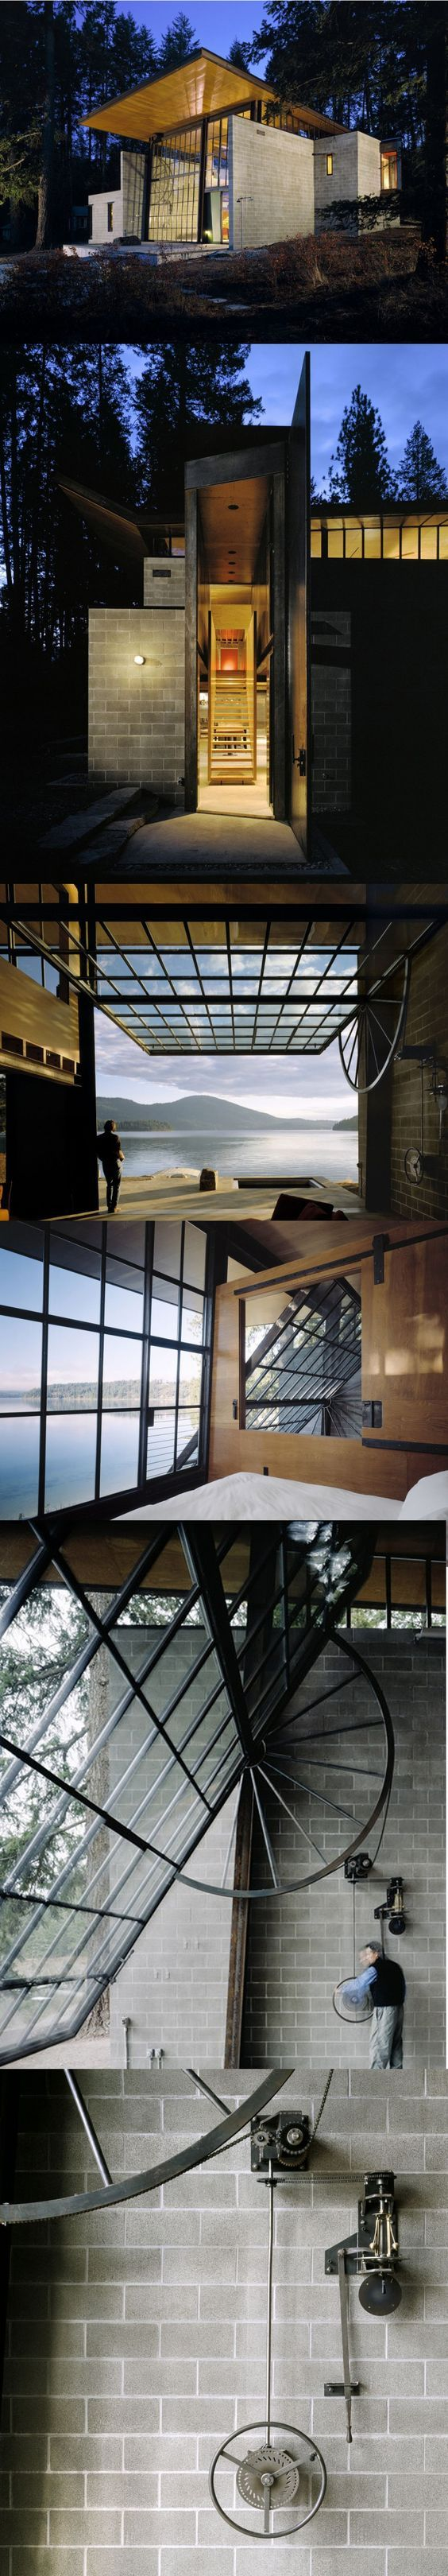 61 best Olson Kundig images on Pinterest | Architecture, Cabin and ...